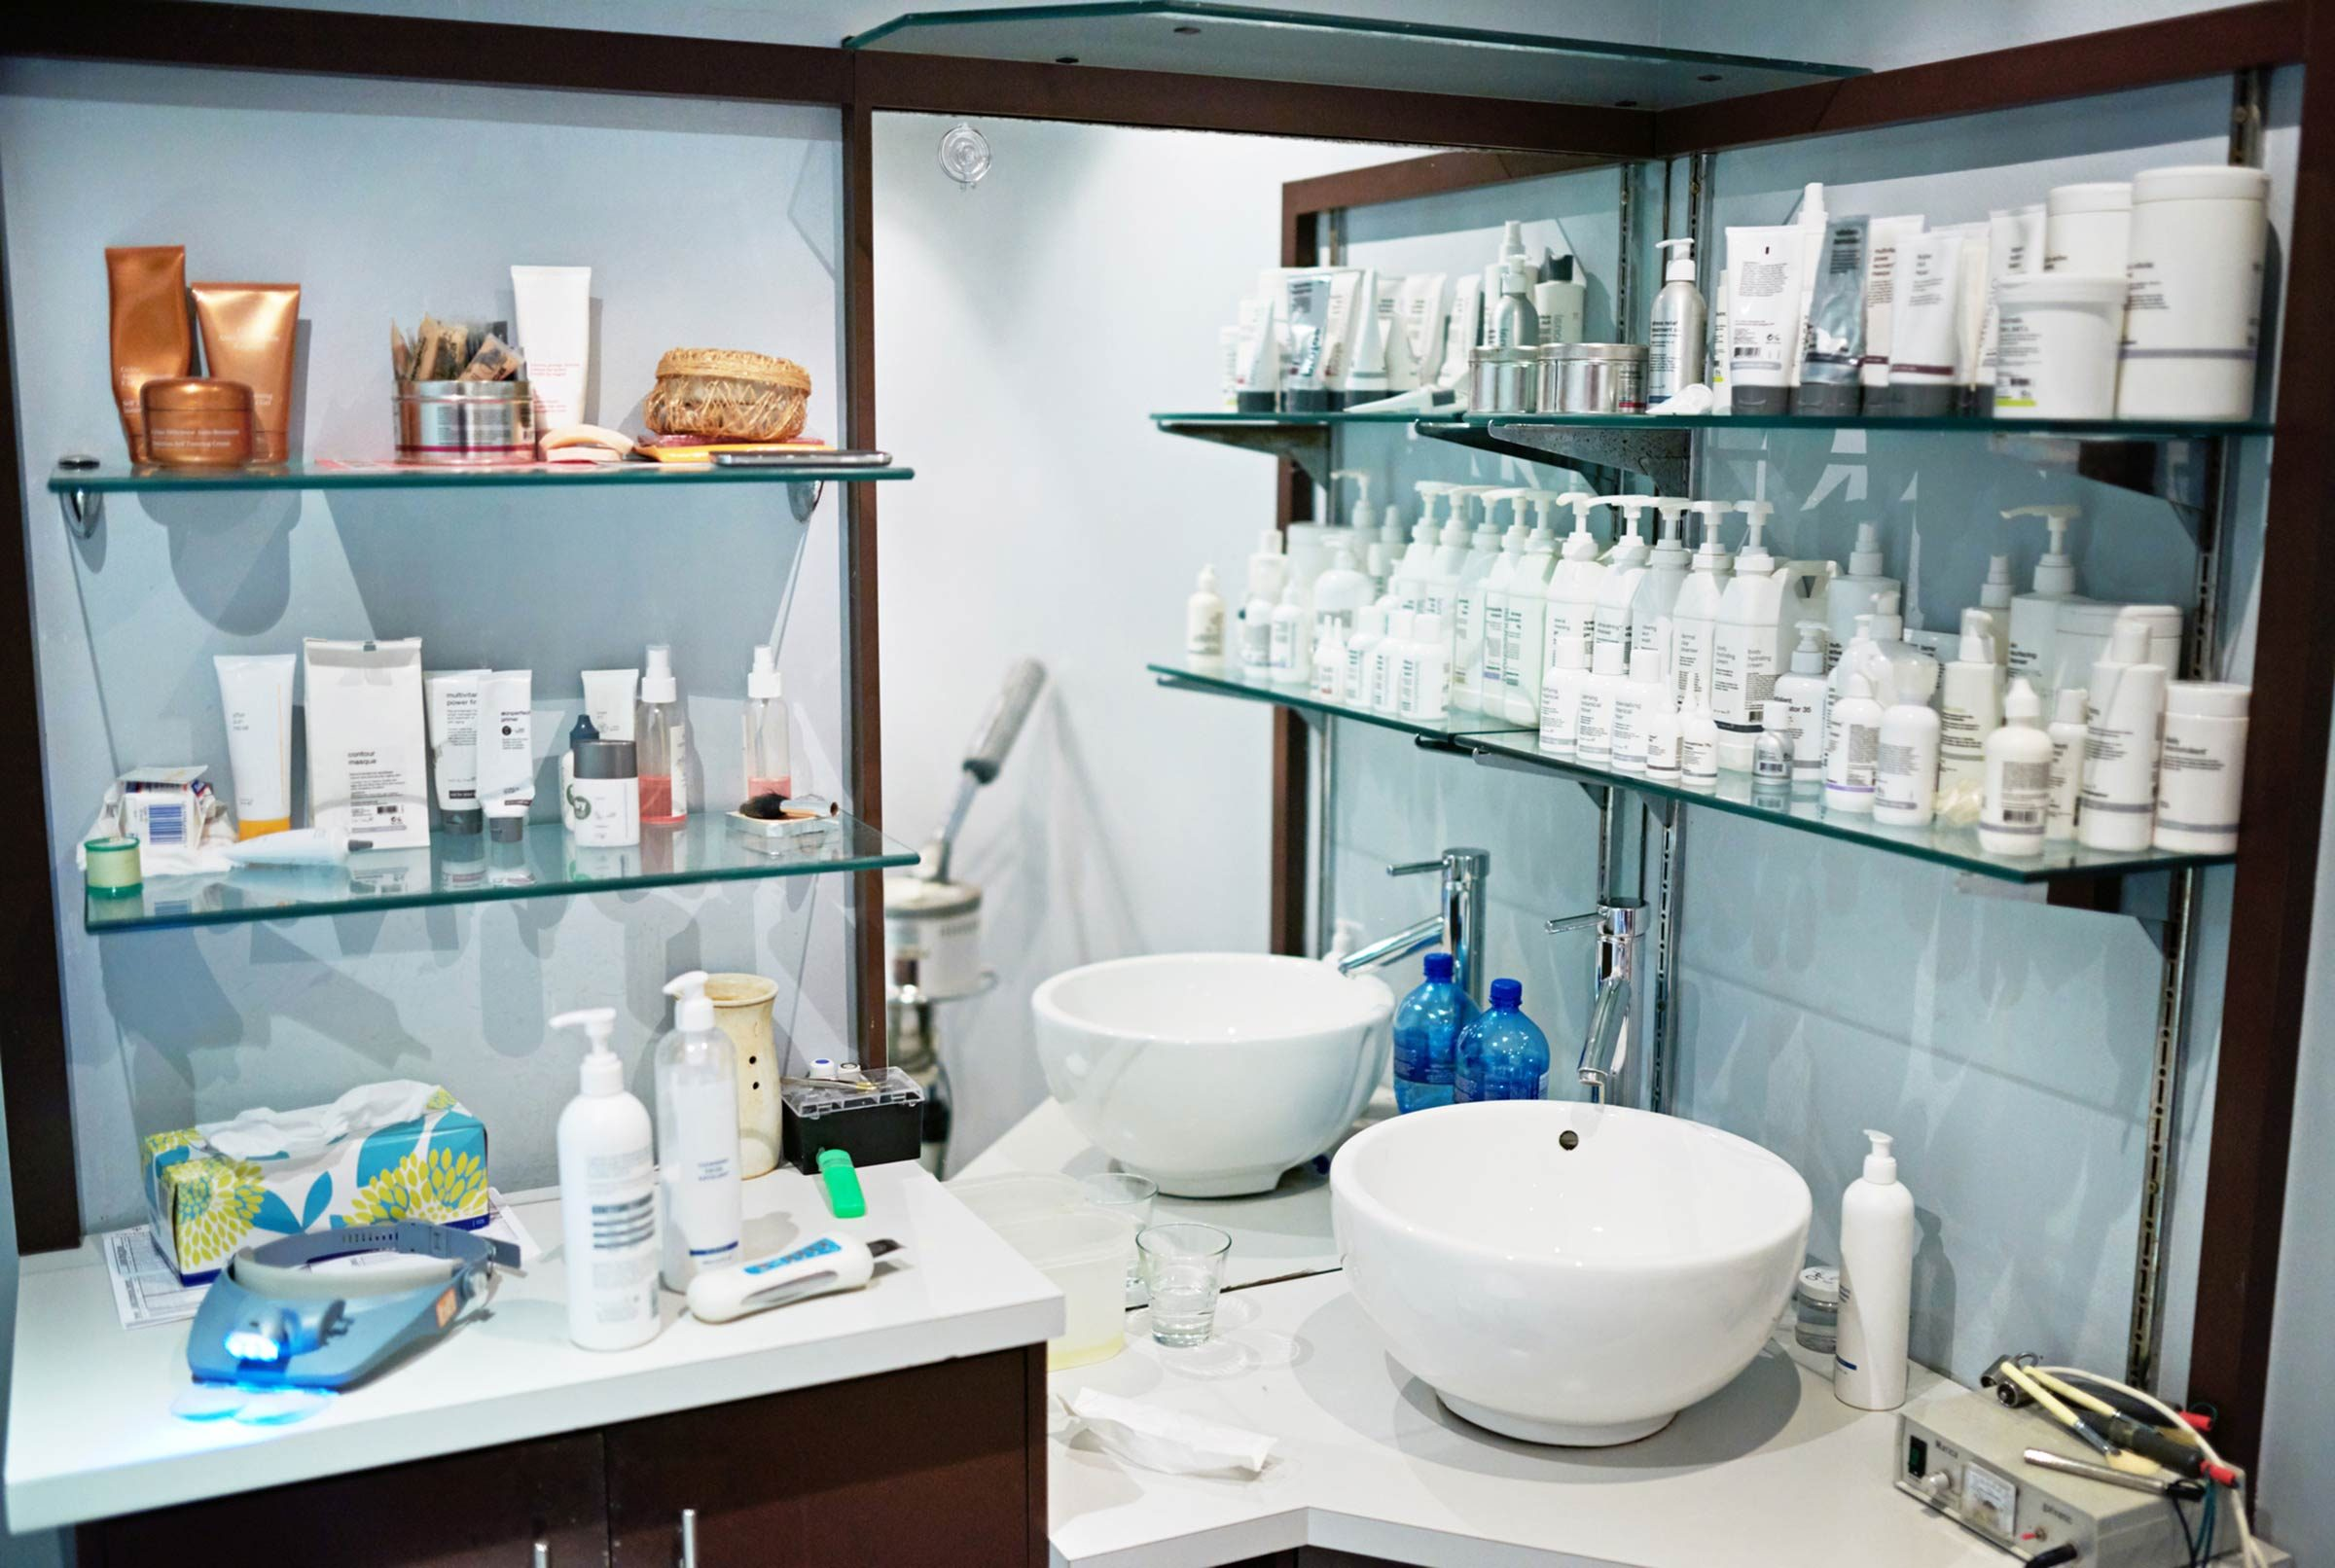 salon shelves and sinks